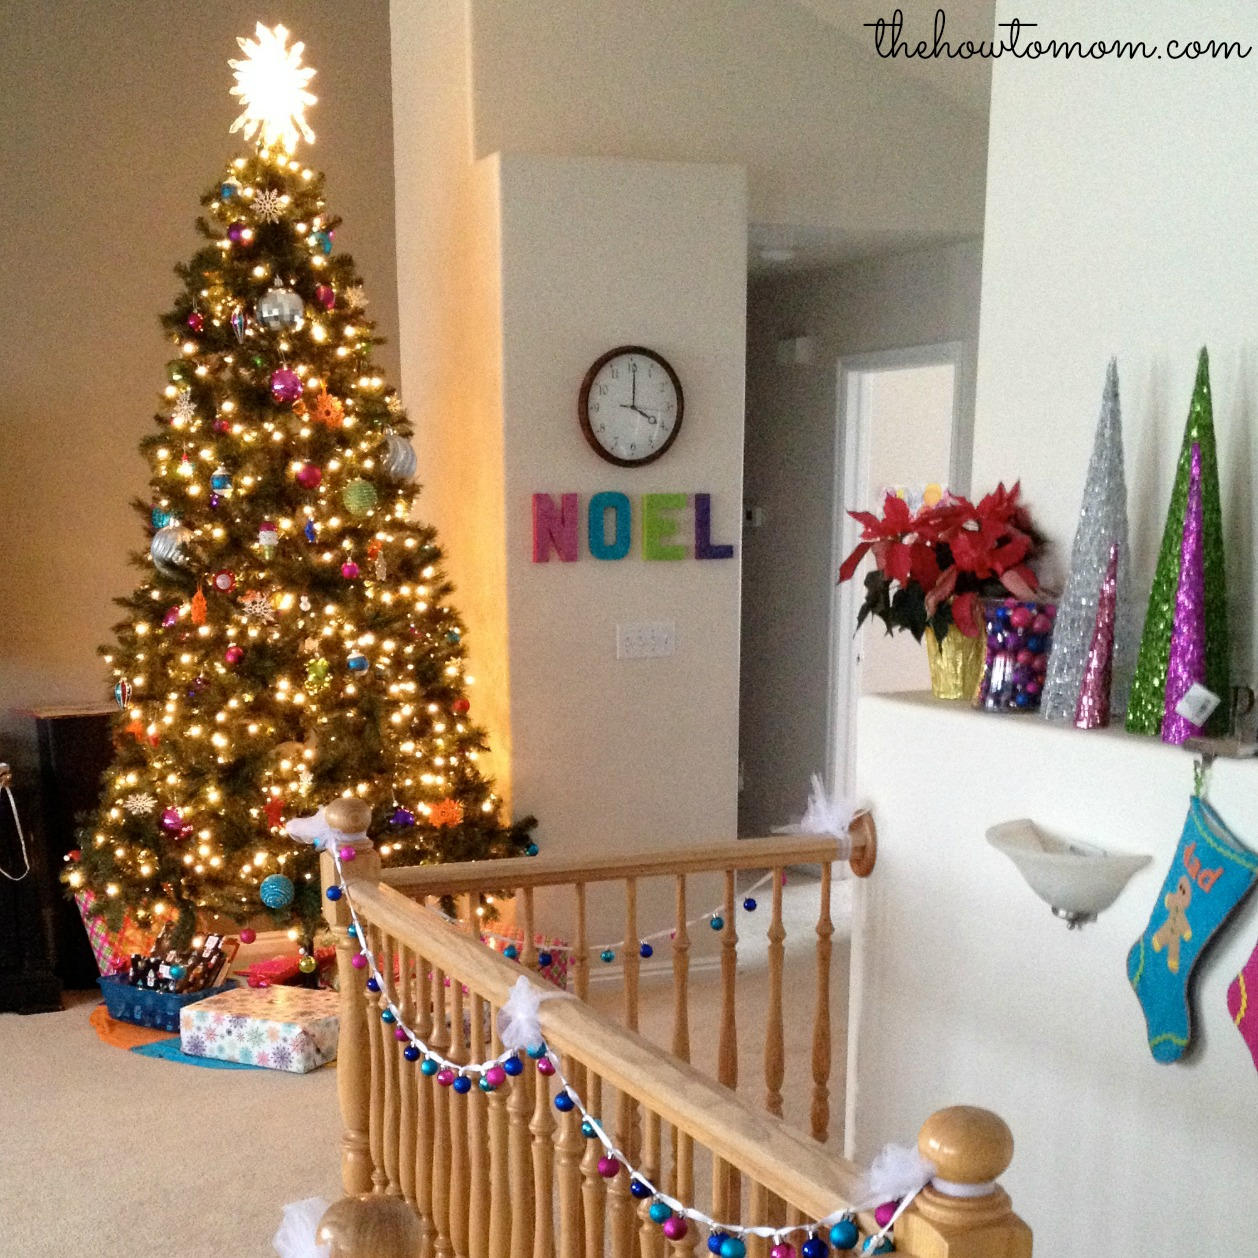 Sparkly noel cardboard letters diy the how to mom if you want another colorful christmas decor idea you can also check out my easy mini garland tutorial here solutioingenieria Image collections